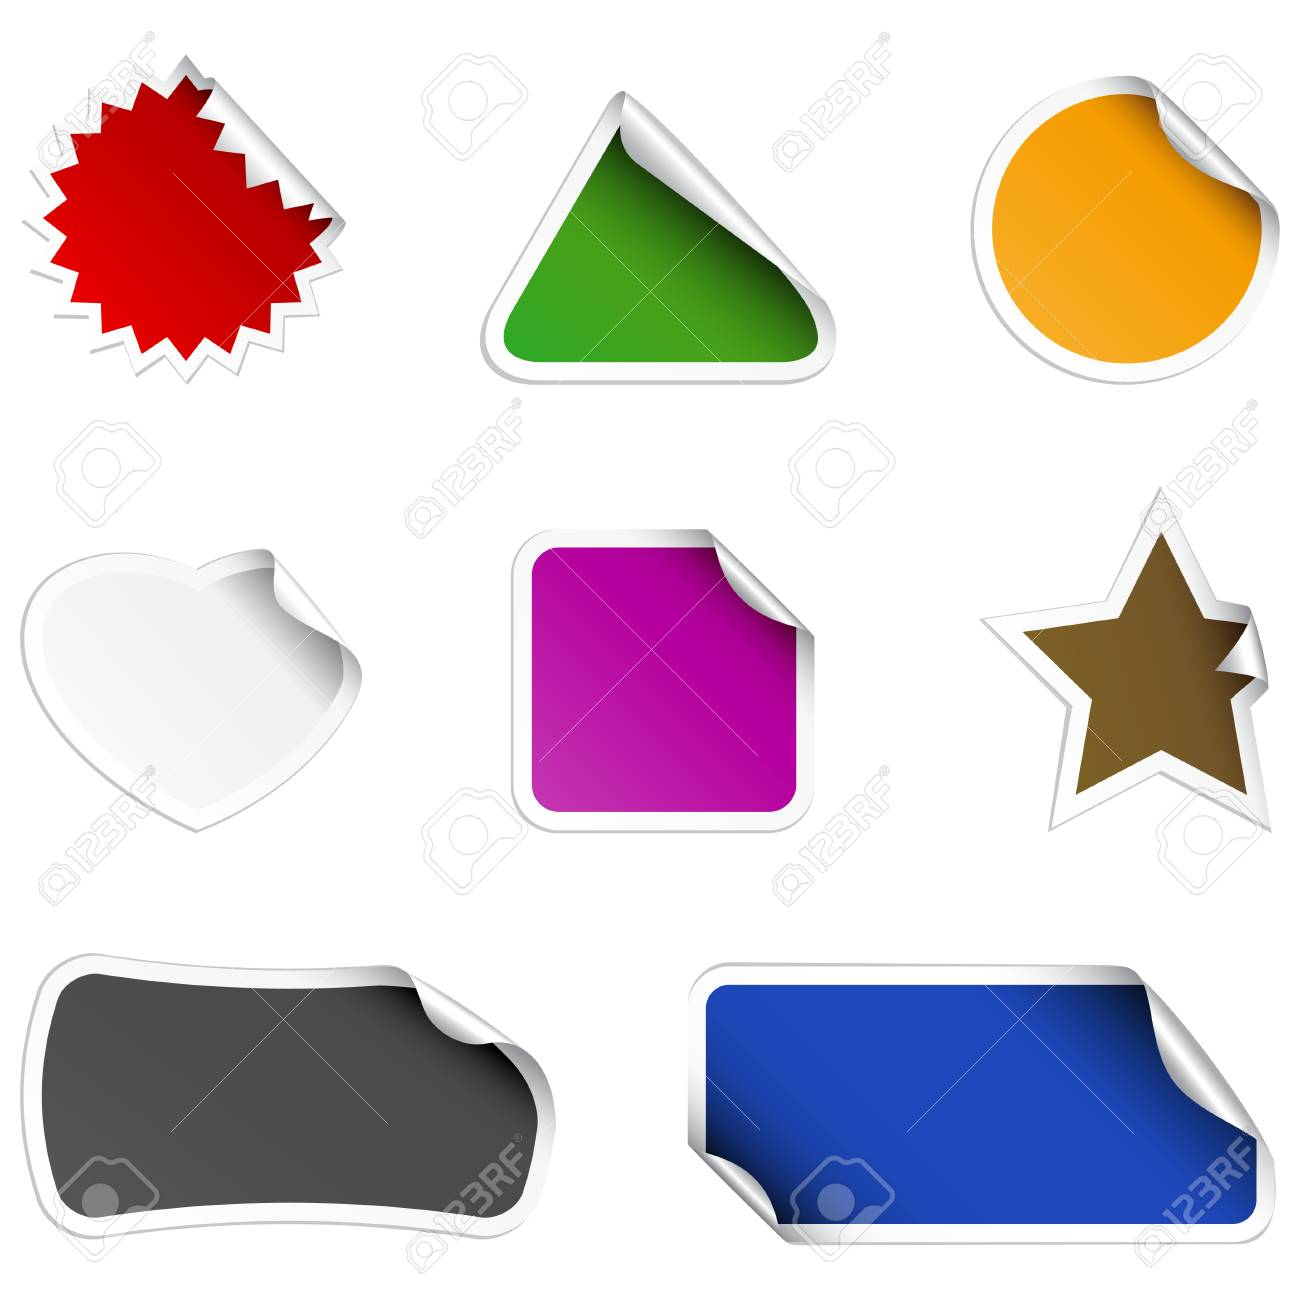 Stickers Stock Vector - 6242189